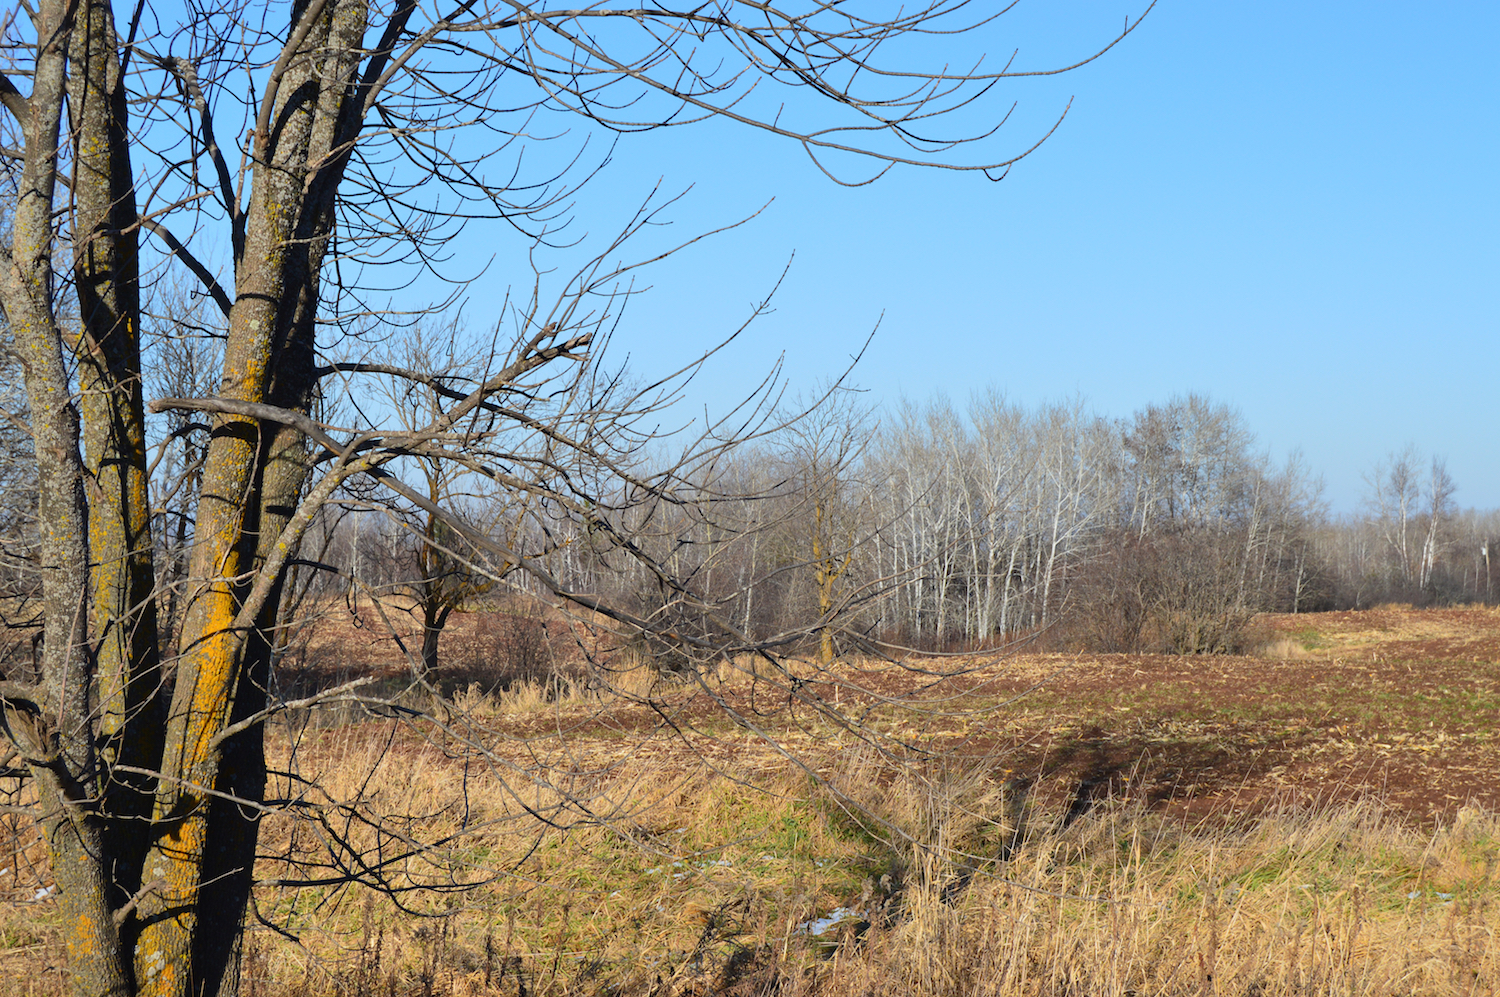 A view near the proposed CAFO